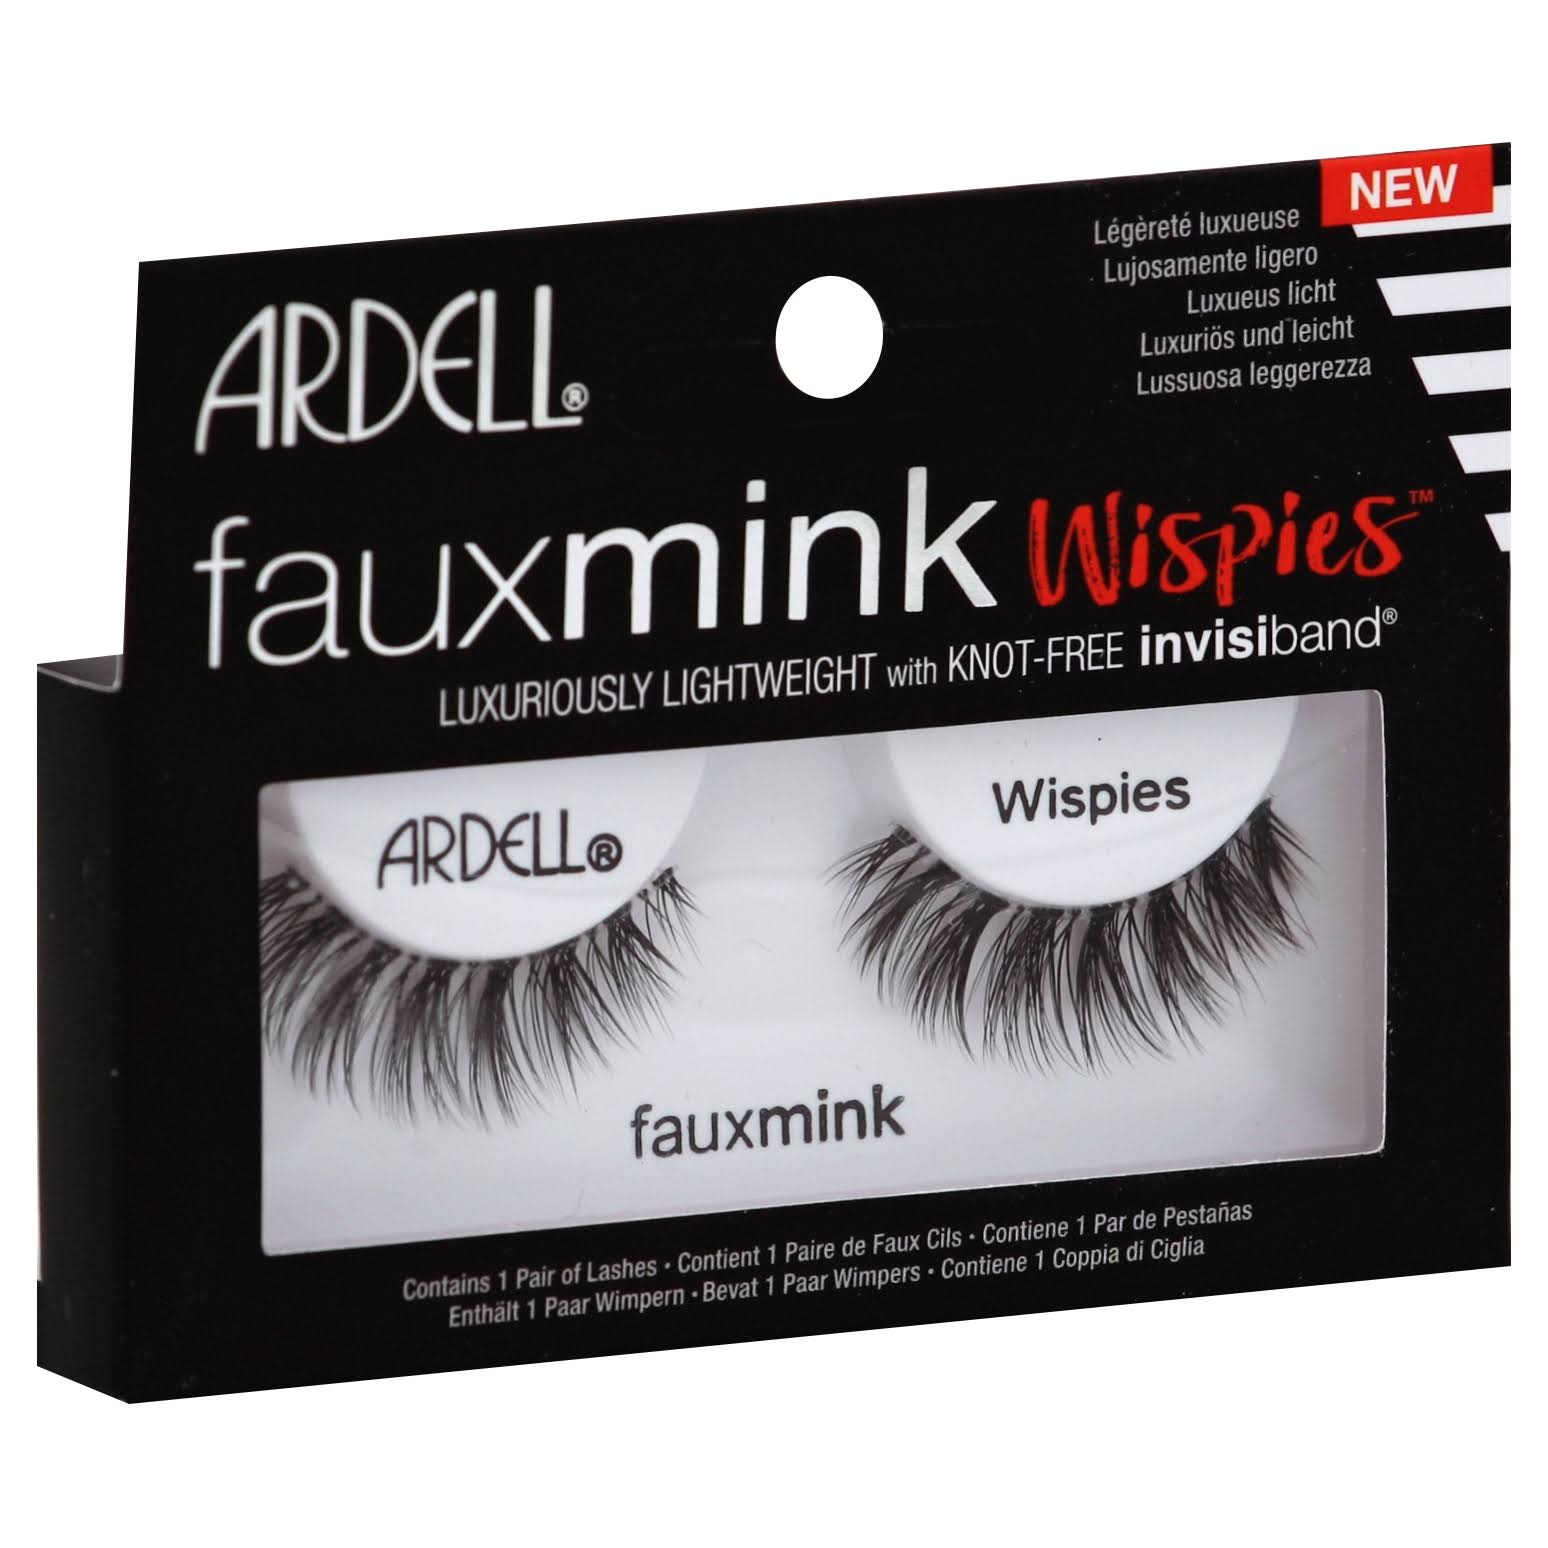 Ardell Lashes, Fauxmink Wispies